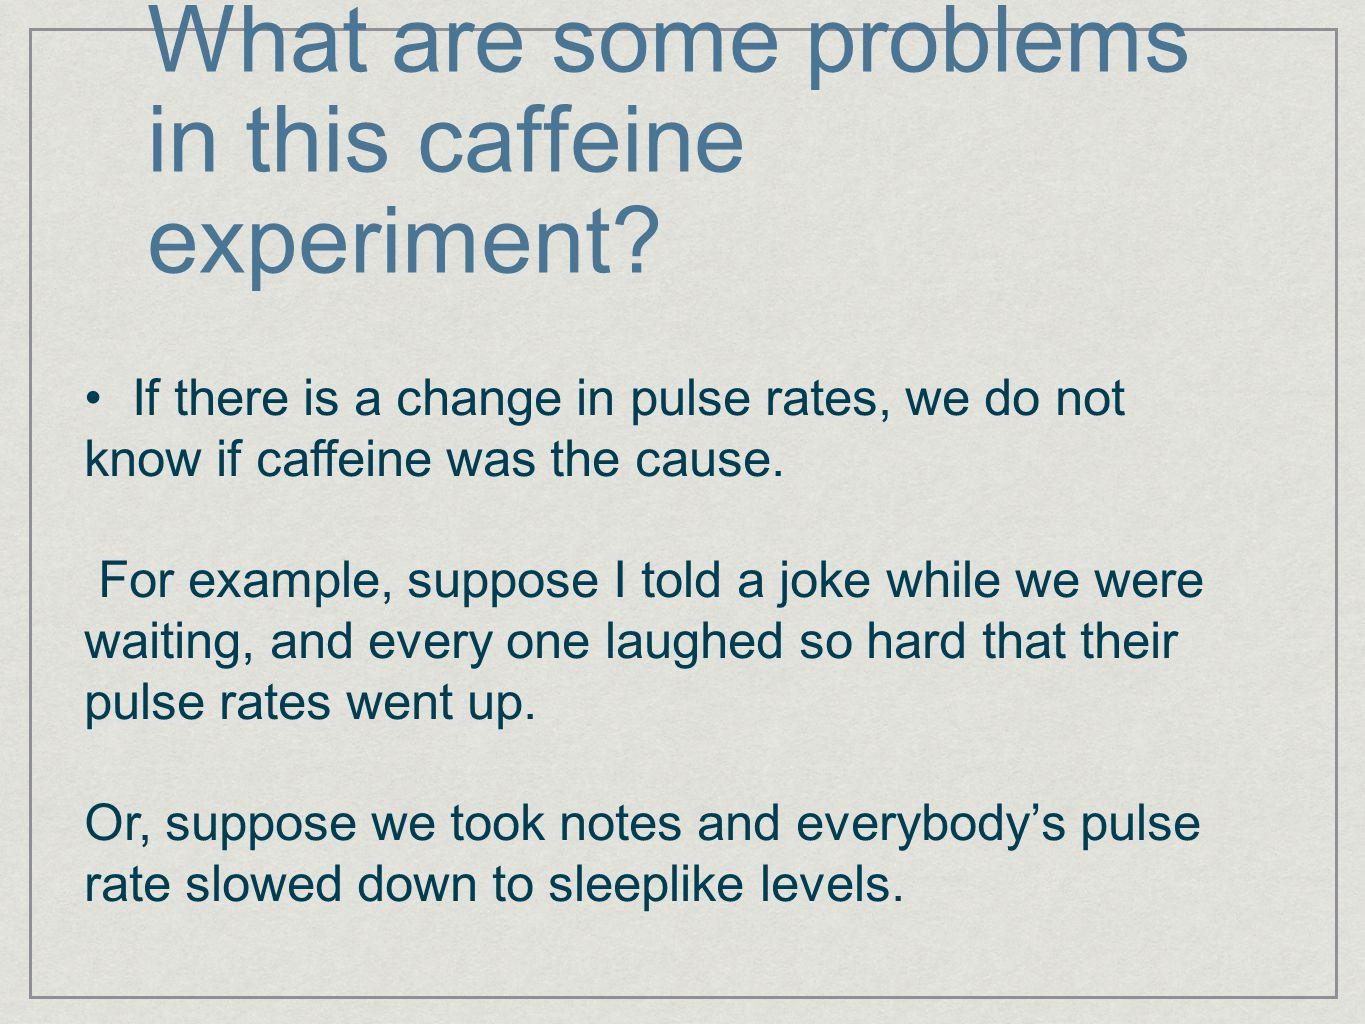 What are some problems in this caffeine experiment? If there is a change in pulse rates, we do not know if caffeine was the cause. For example, suppos